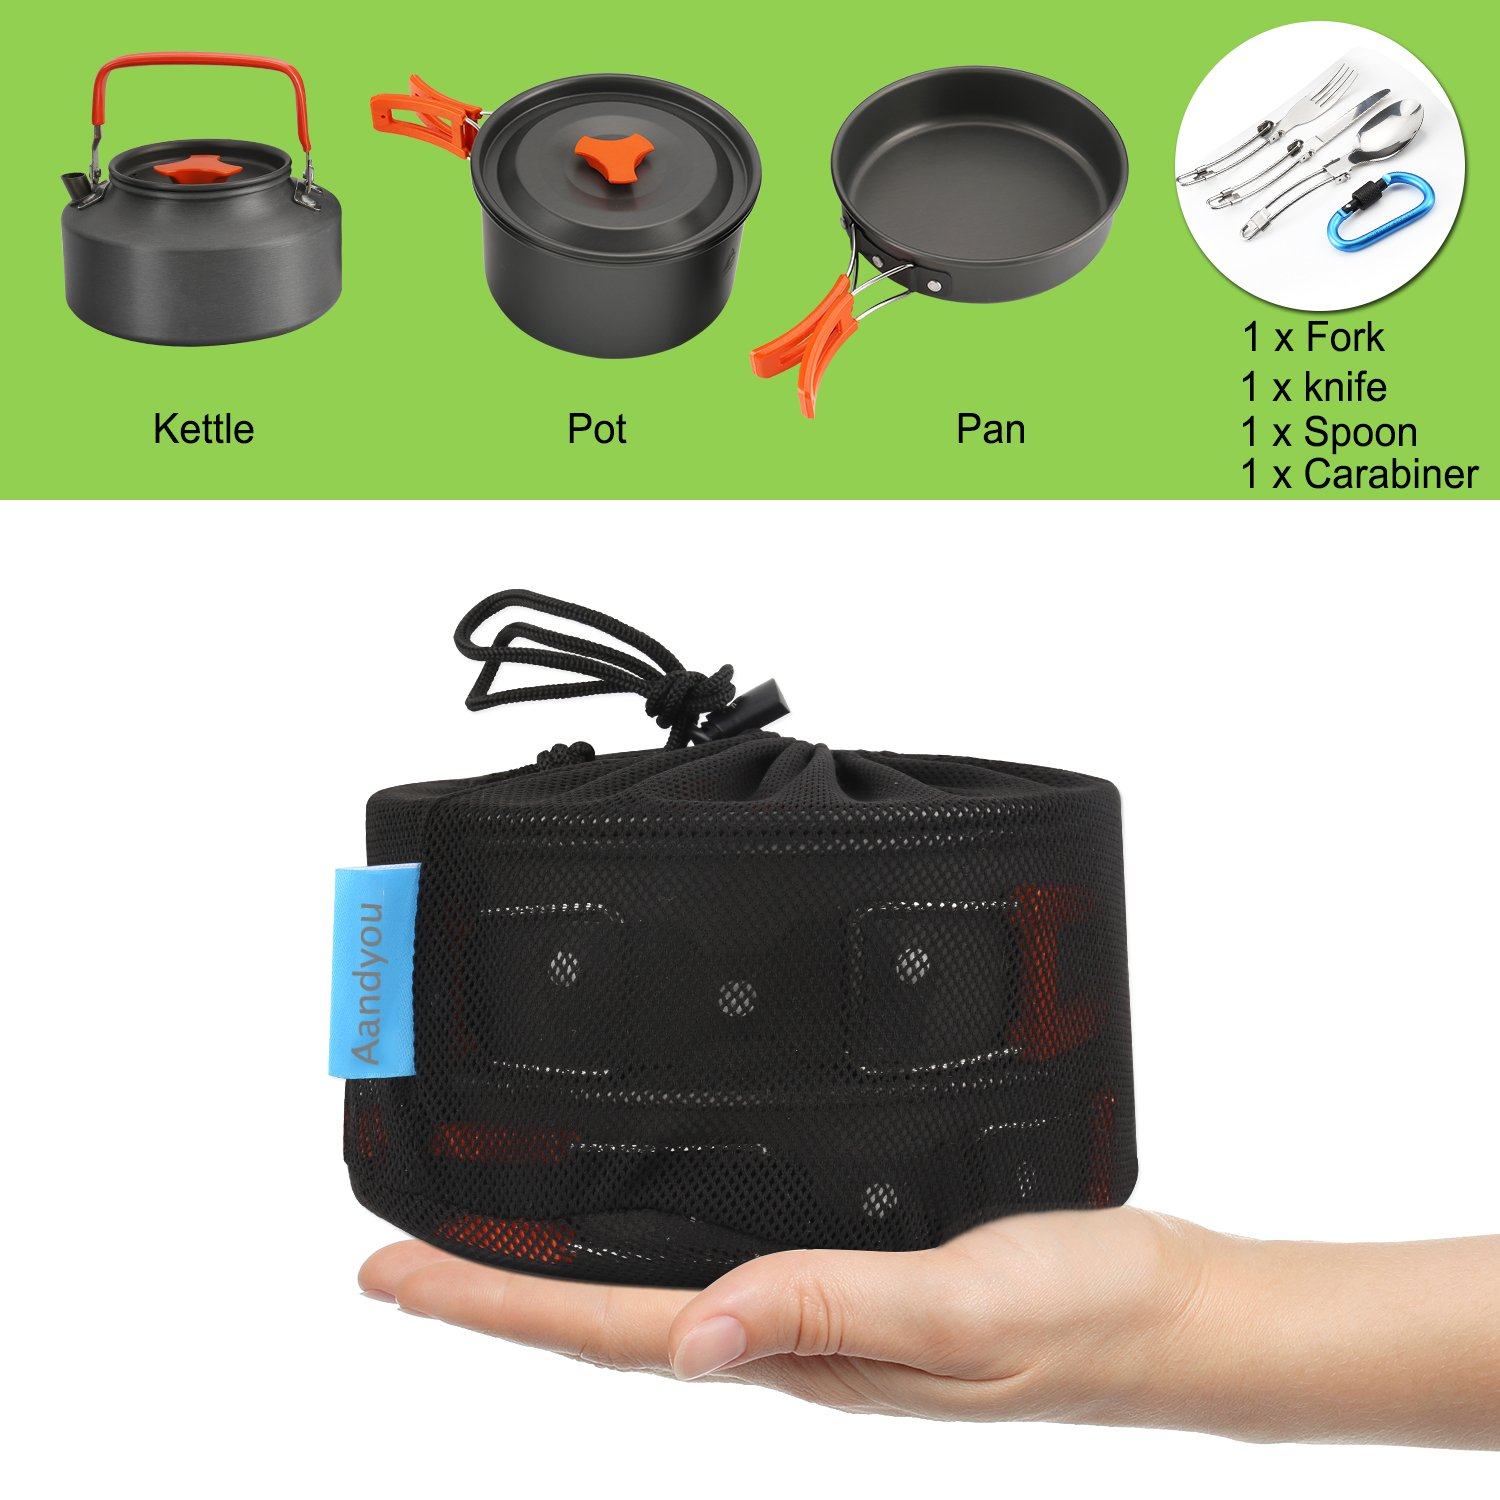 56908ab89775 Camping Cookware Kit ,Outdoor Cooking Set Non Stick Camping Pans and Pots  Lightweight Campfire Cooking Kettle for 1 to 5 People ...